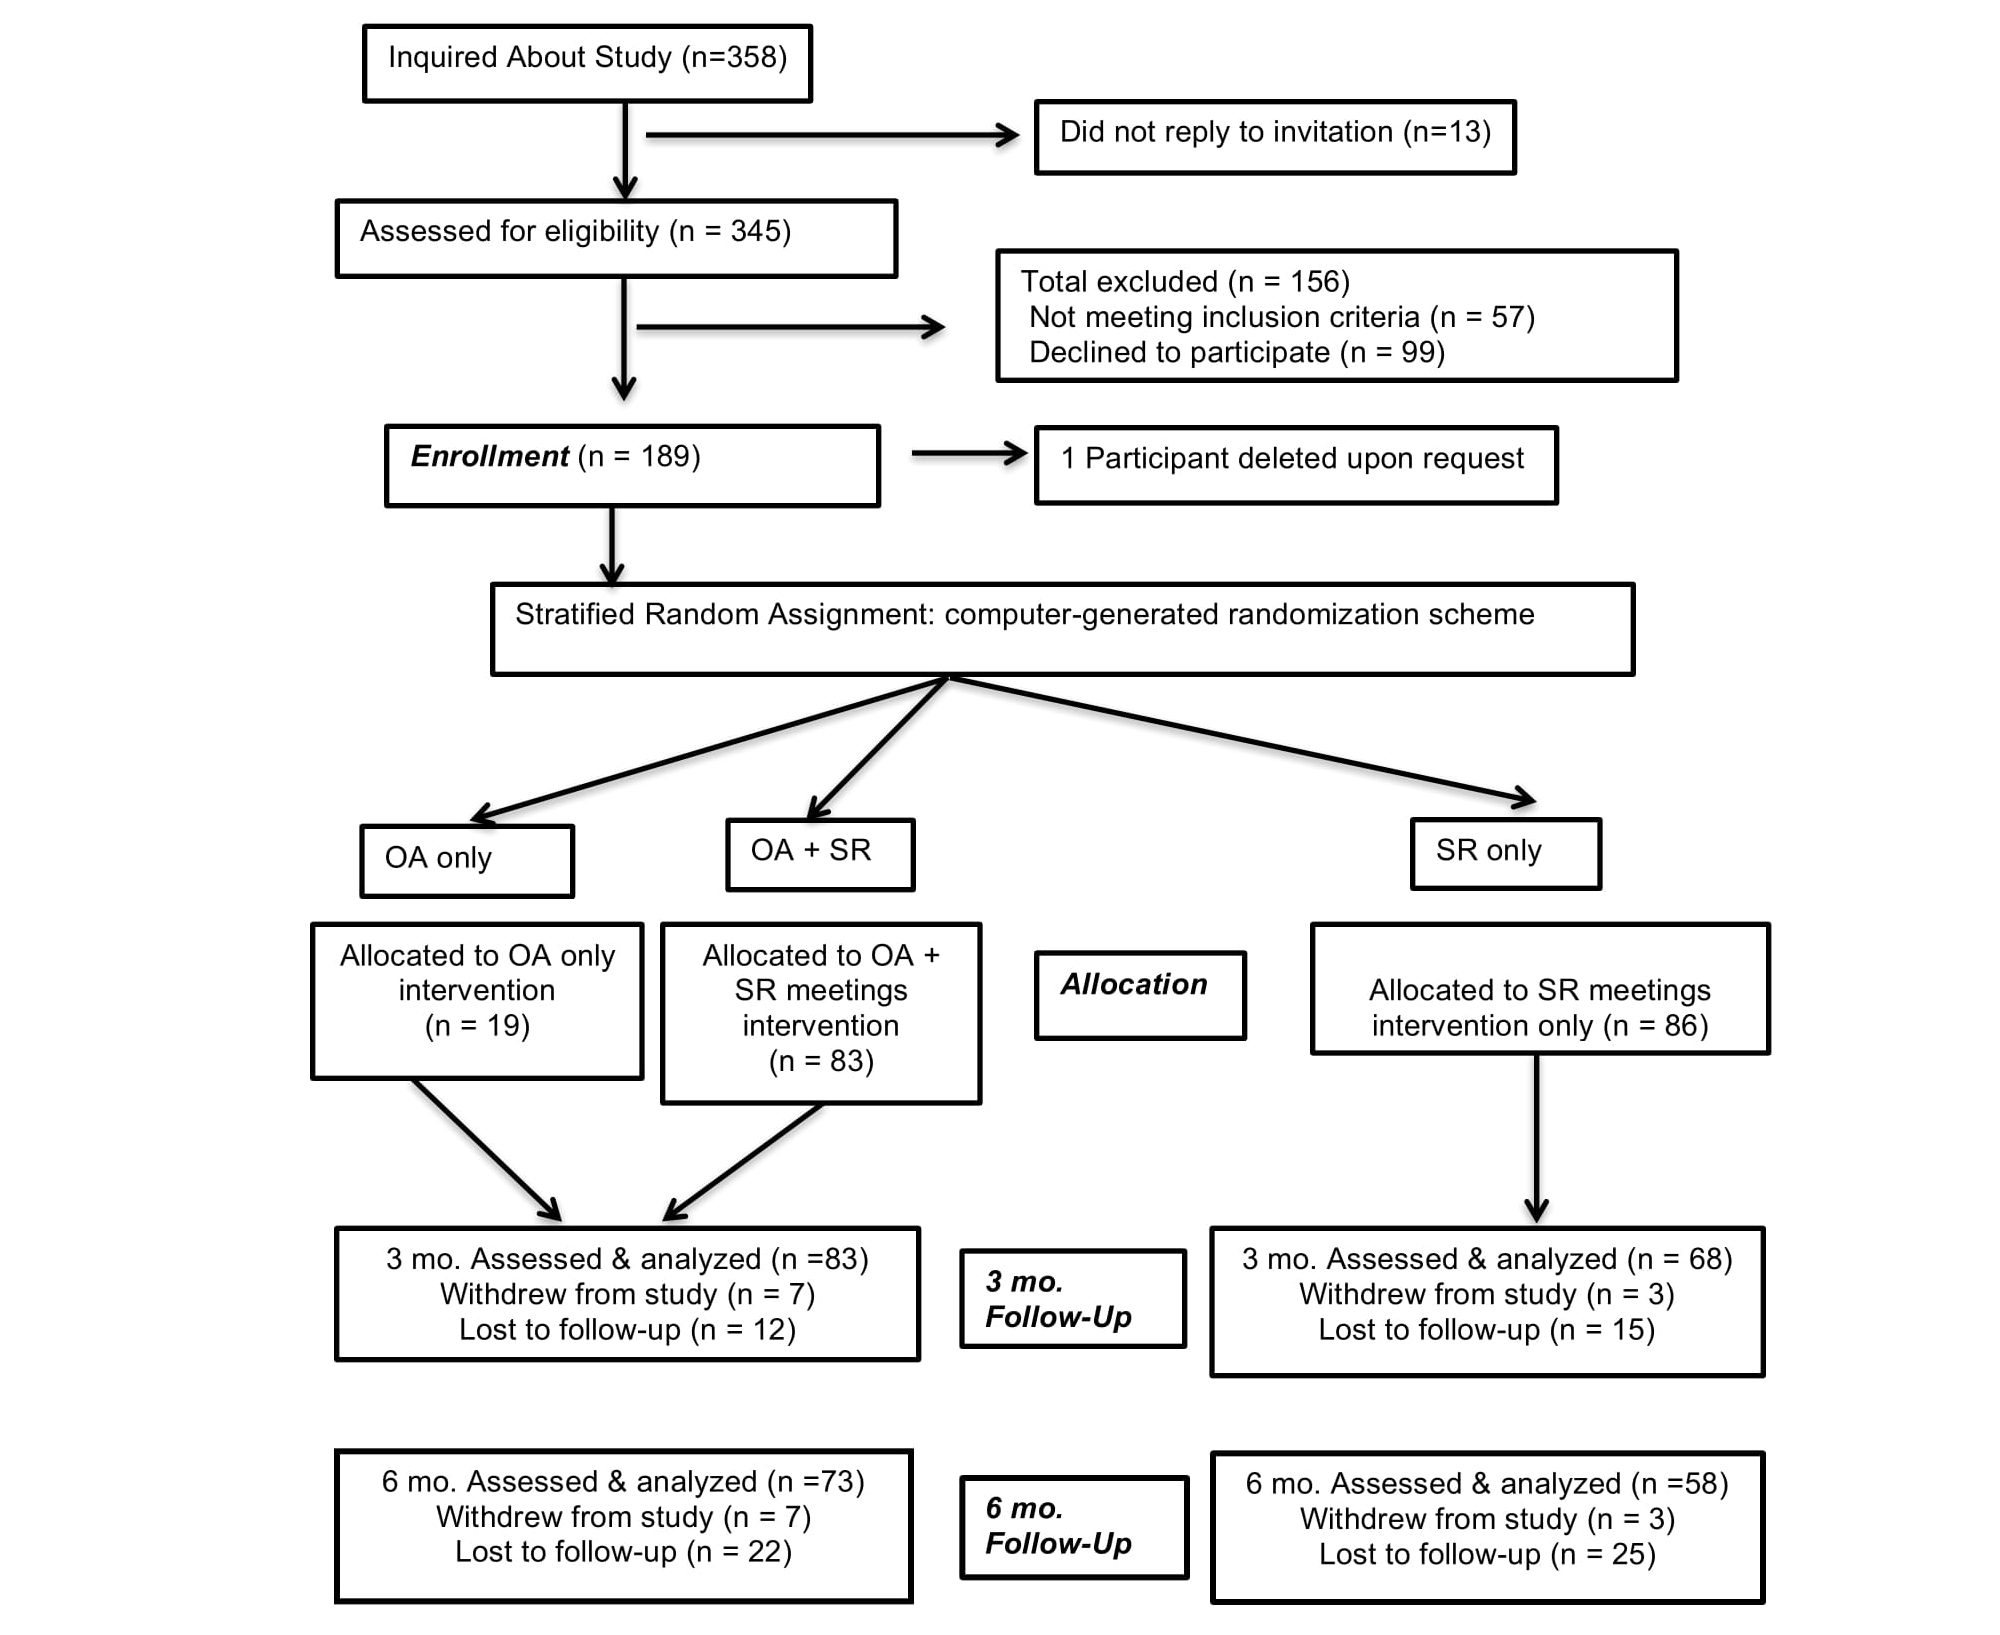 Jmir overcoming addictions a web based application and smart consort study participant flow chart oa overcoming addictions sr smart recovery nvjuhfo Choice Image